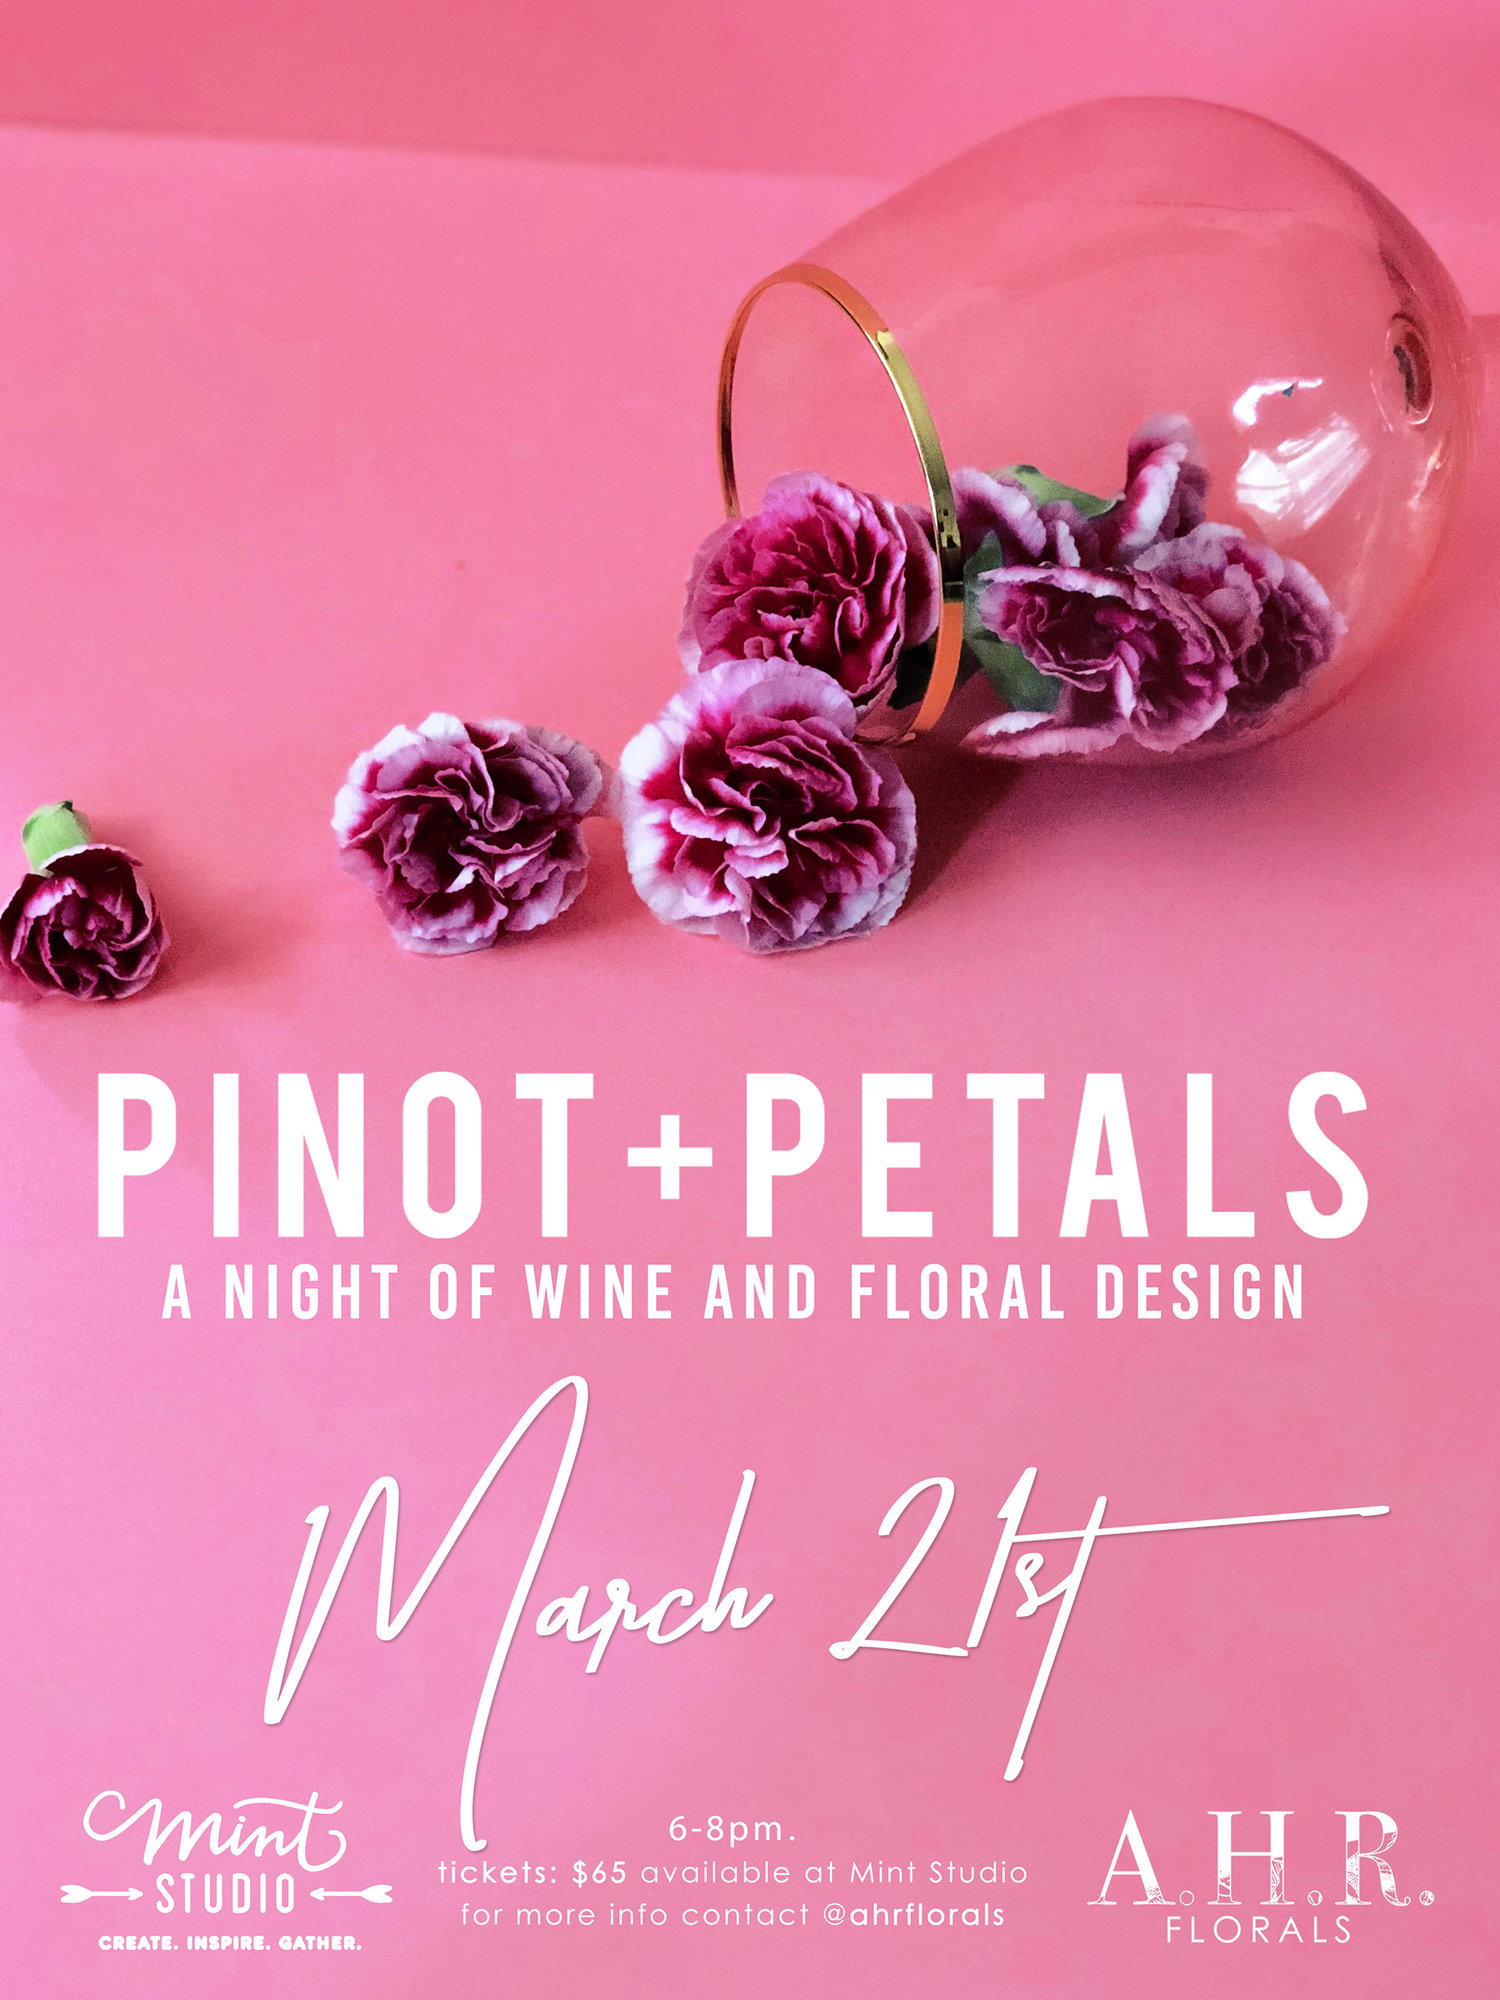 pinot and petals wine and floral design ahr florals